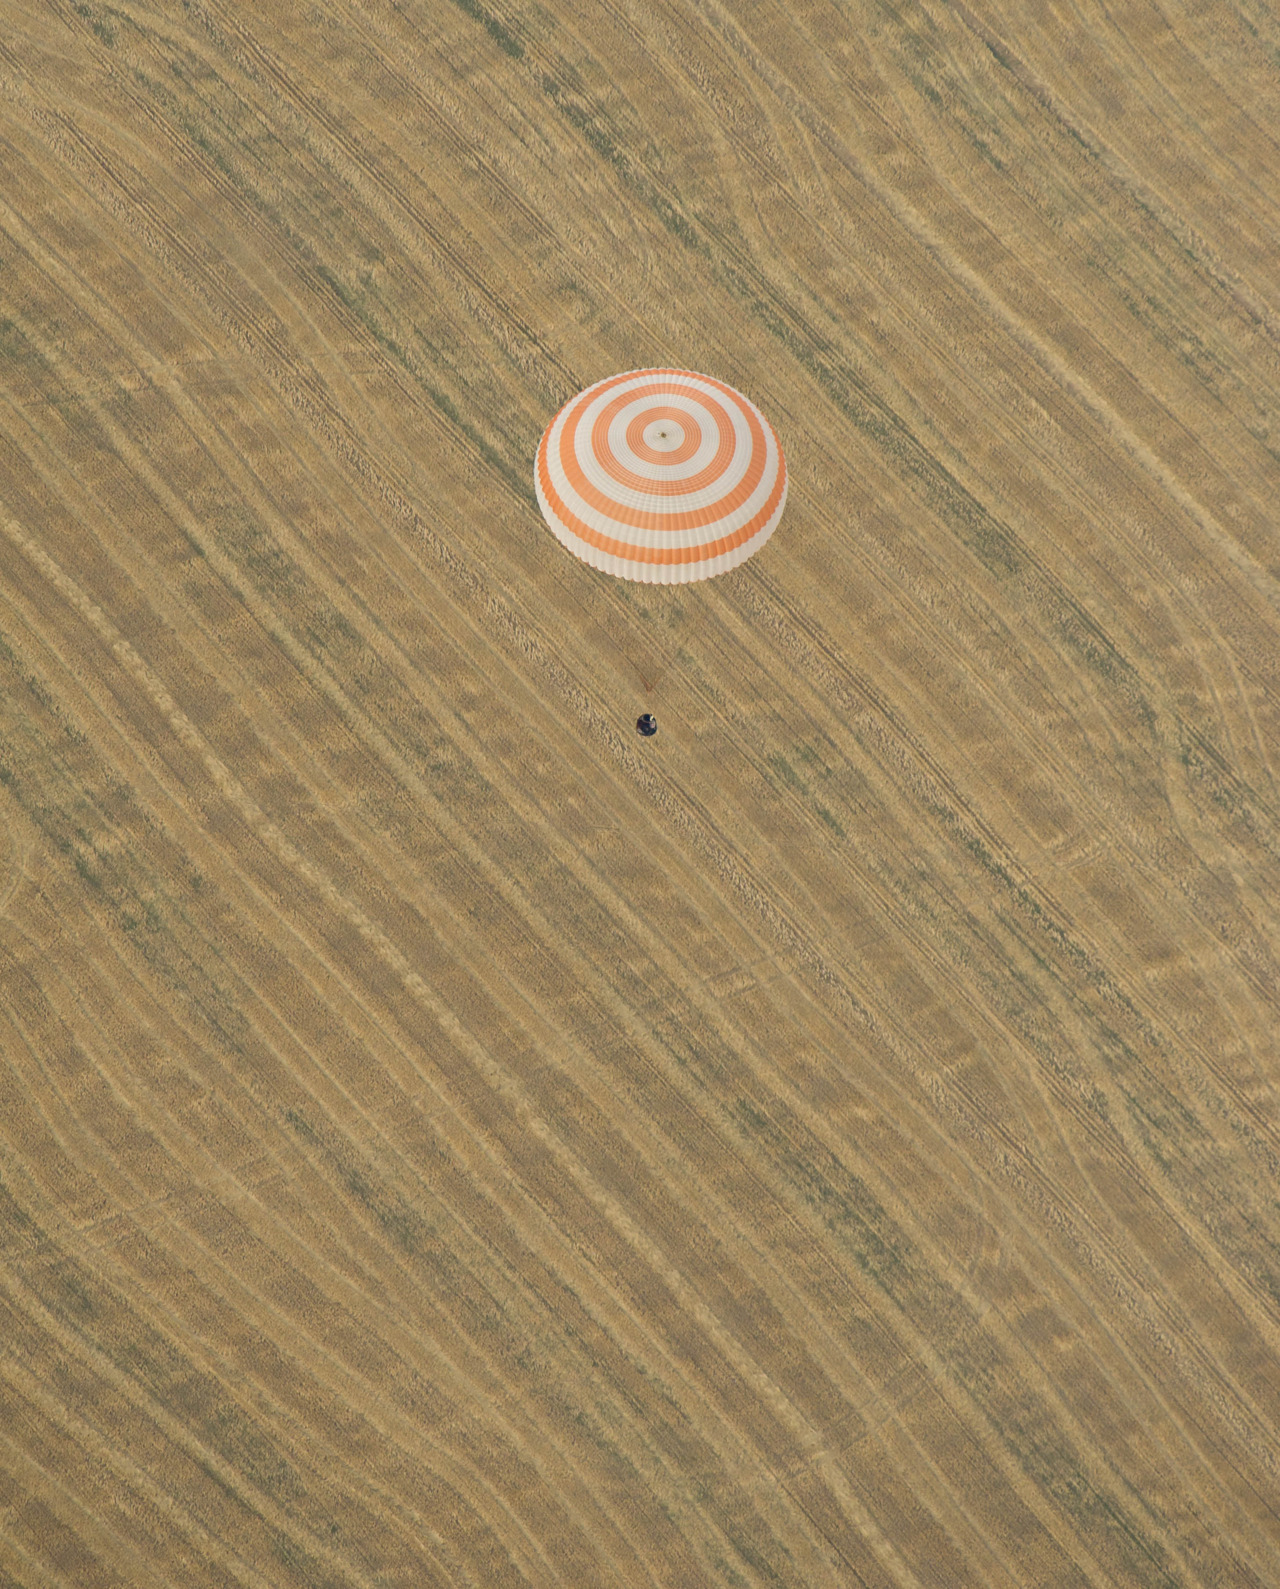 The Soyuz TMA-22 spacecraft is seen as it lands with Expedition 30 Commander Dan Burbank, and Flight Engineers Anton Shkaplerov and Anatoly Ivanishin in a remote area outside of the town of Arkalyk, Kazakhstan, on Friday, April 27, 2012. NASA Astronaut Burbank, Russian Cosmonauts Shkaplerov and Ivanishin are returning from more than five months onboard the International Space Station where they served as members of the Expedition 29 and 30 crews. Photo by Carla Cioffi.